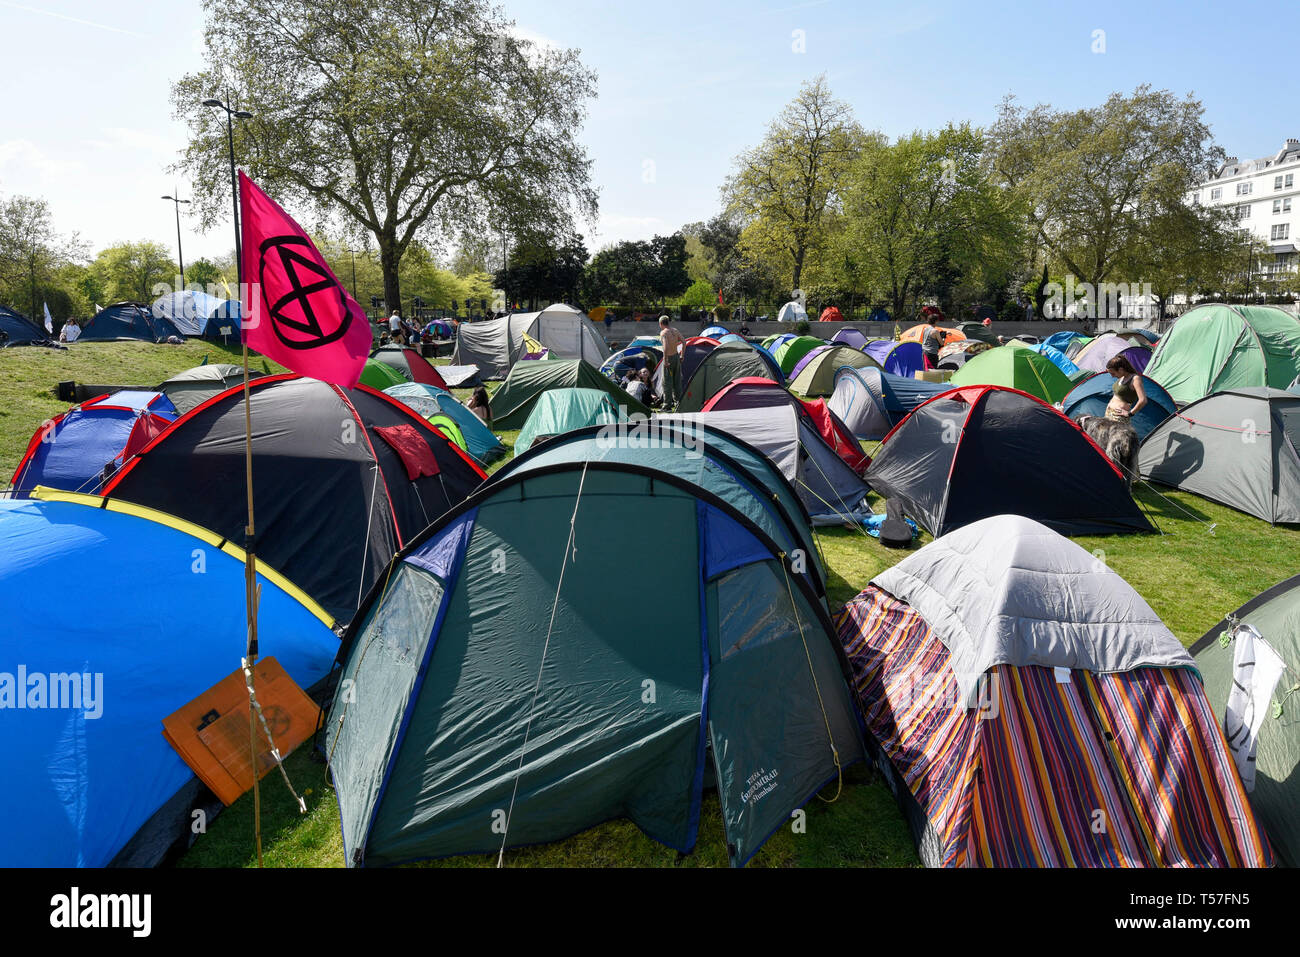 London, UK.  22 April 2019.  Activists' tents at Marble Arch during 'London: International Rebellion', on day eight of a protest organised by Extinction Rebellion.  Protesters are demanding that governments take action against climate change.  After police issued section 14 orders at the other protest sites of Oxford Circus, Waterloo Bridge and Parliament Square resulting in over 900 arrests, protesters have convened at the designated site of Marble Arch so that the protest can continue into its second week.  Credit: Stephen Chung / Alamy Live News - Stock Image